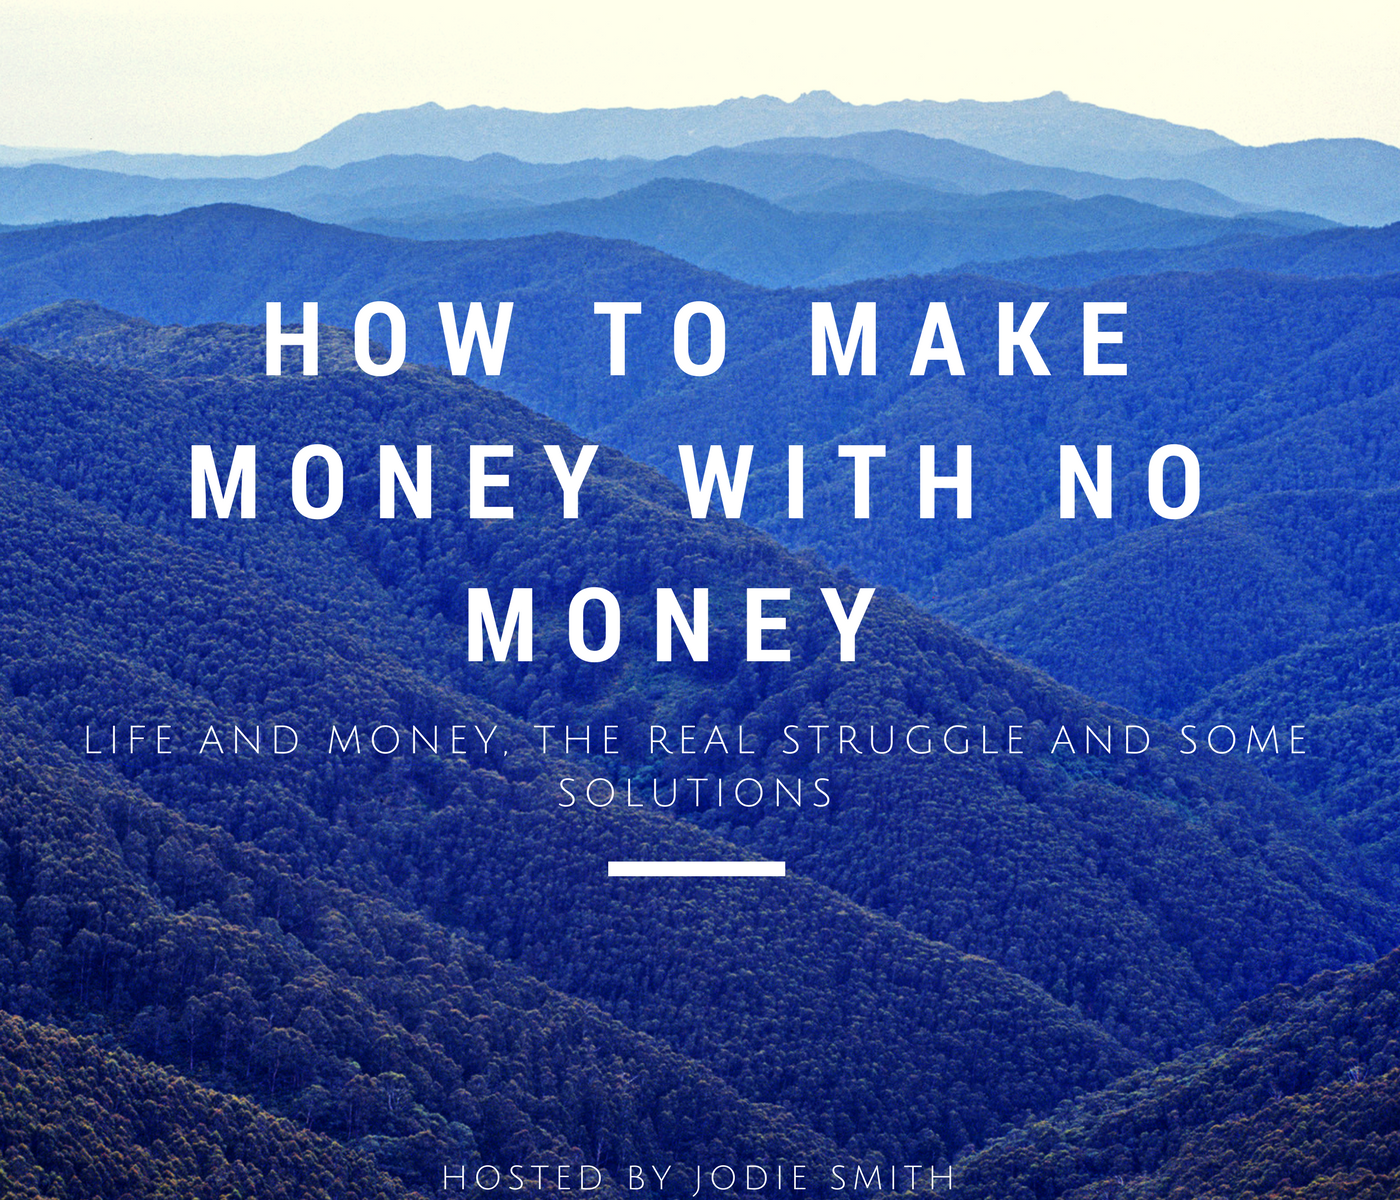 How to Make Money with No Money – Life and Money, the Real Struggle and Some Solutions